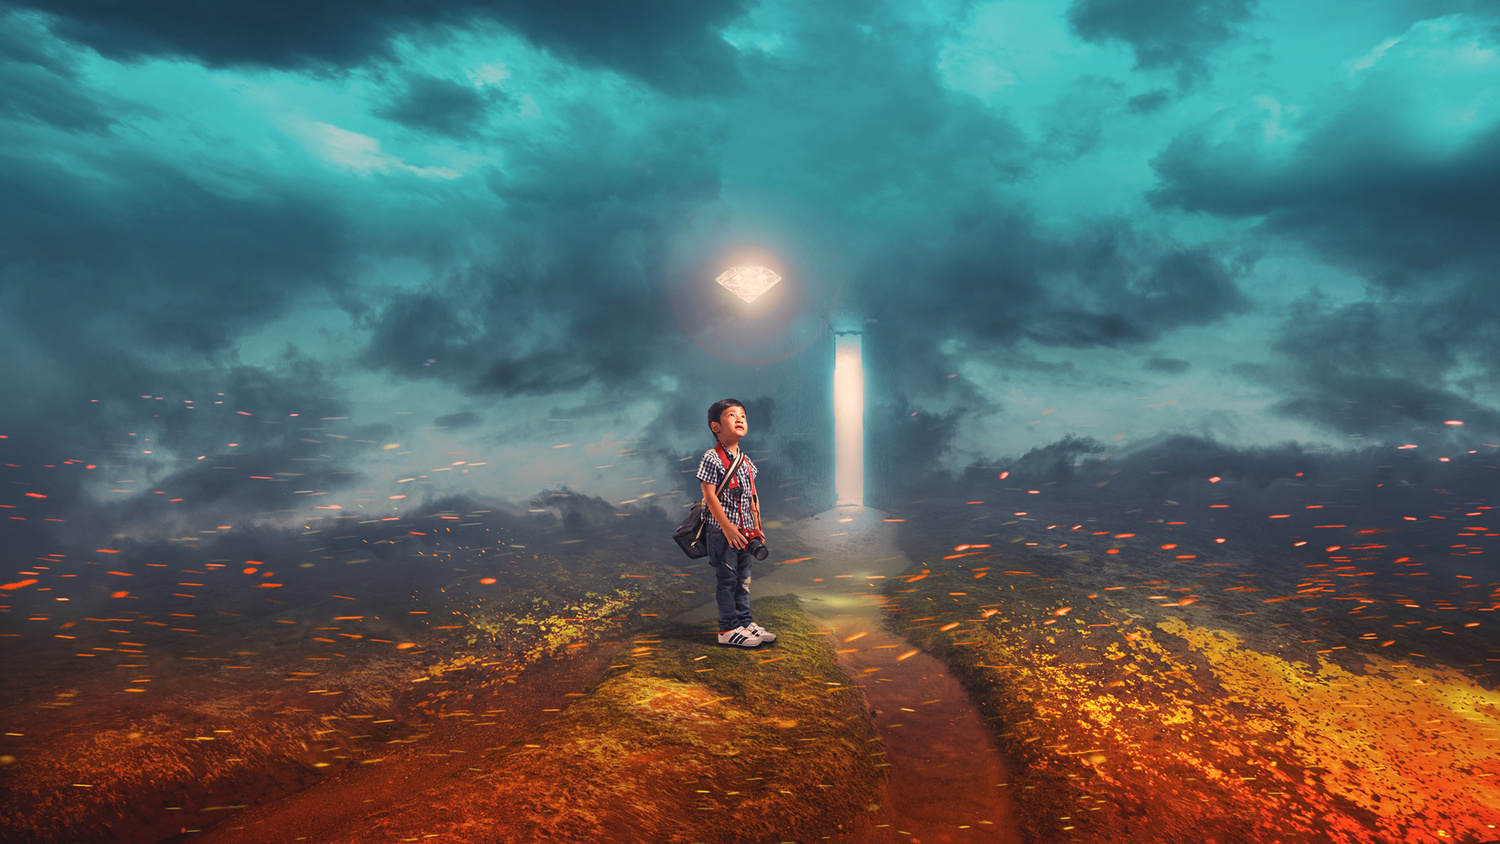 Lost by Hasbullah Ridho